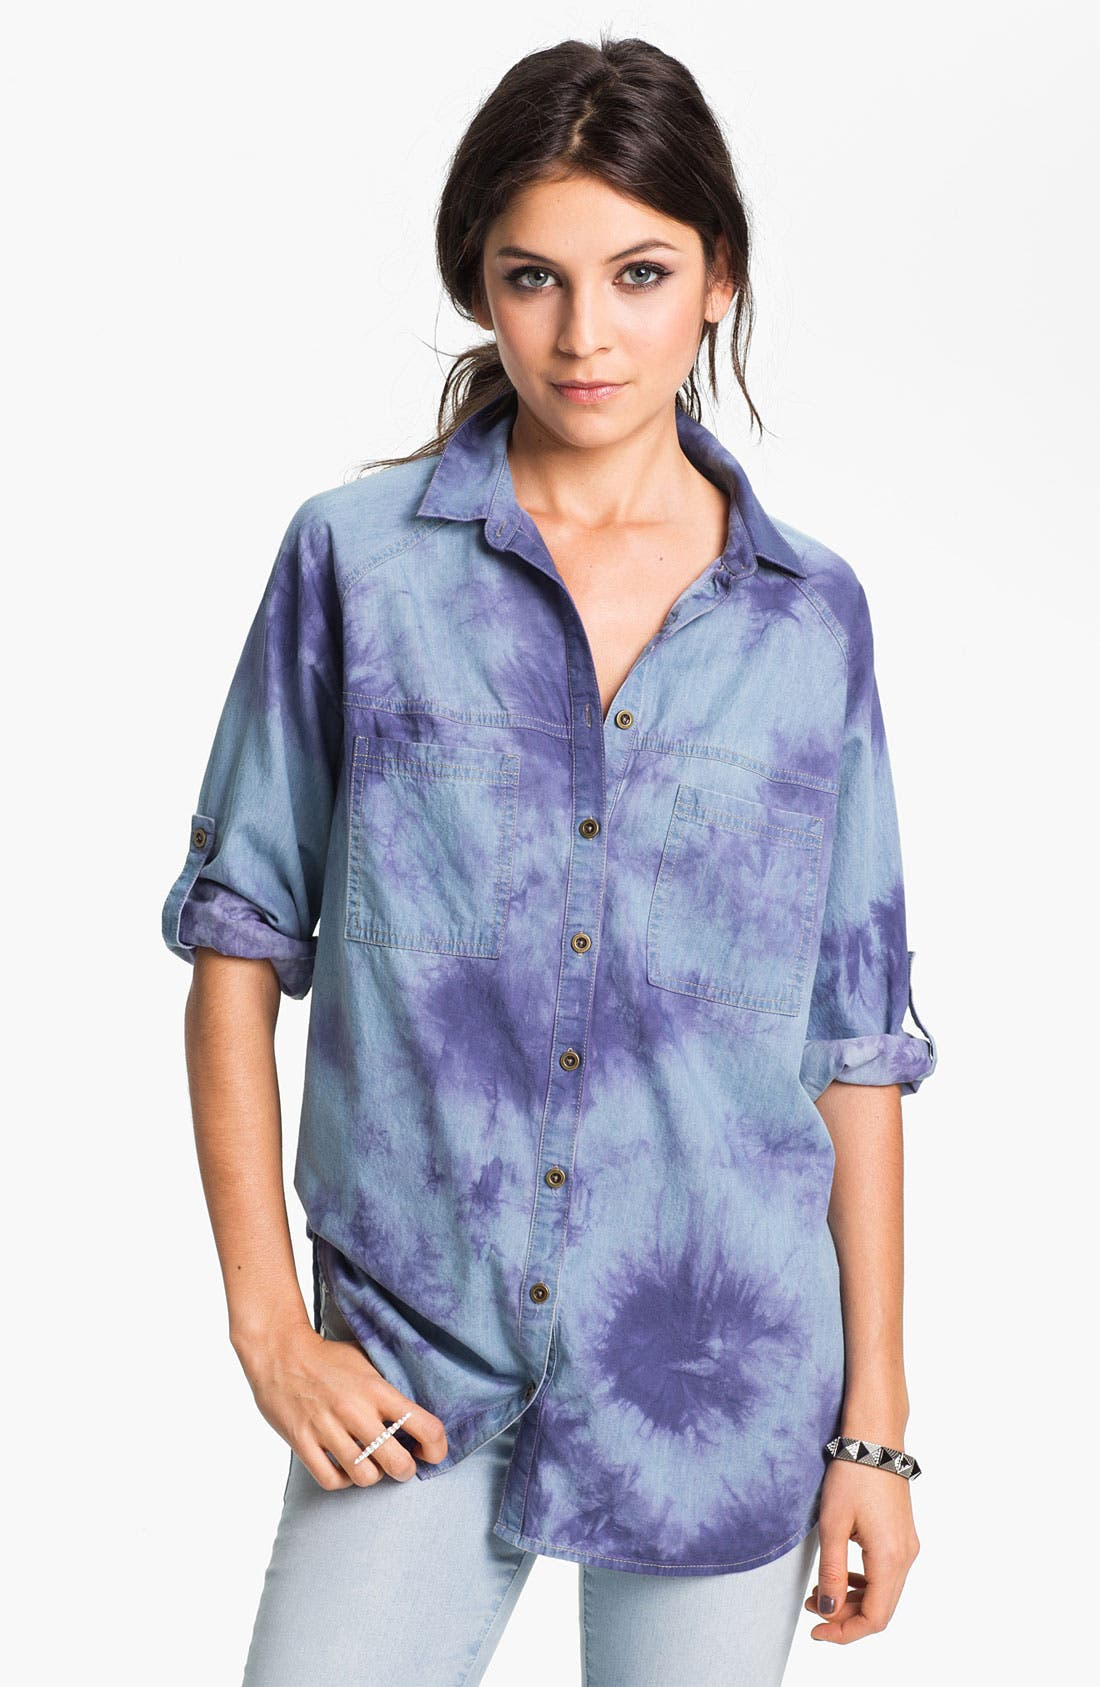 Alternate Image 1 Selected - Fire Tie Dye Chambray Shirt (Juniors)